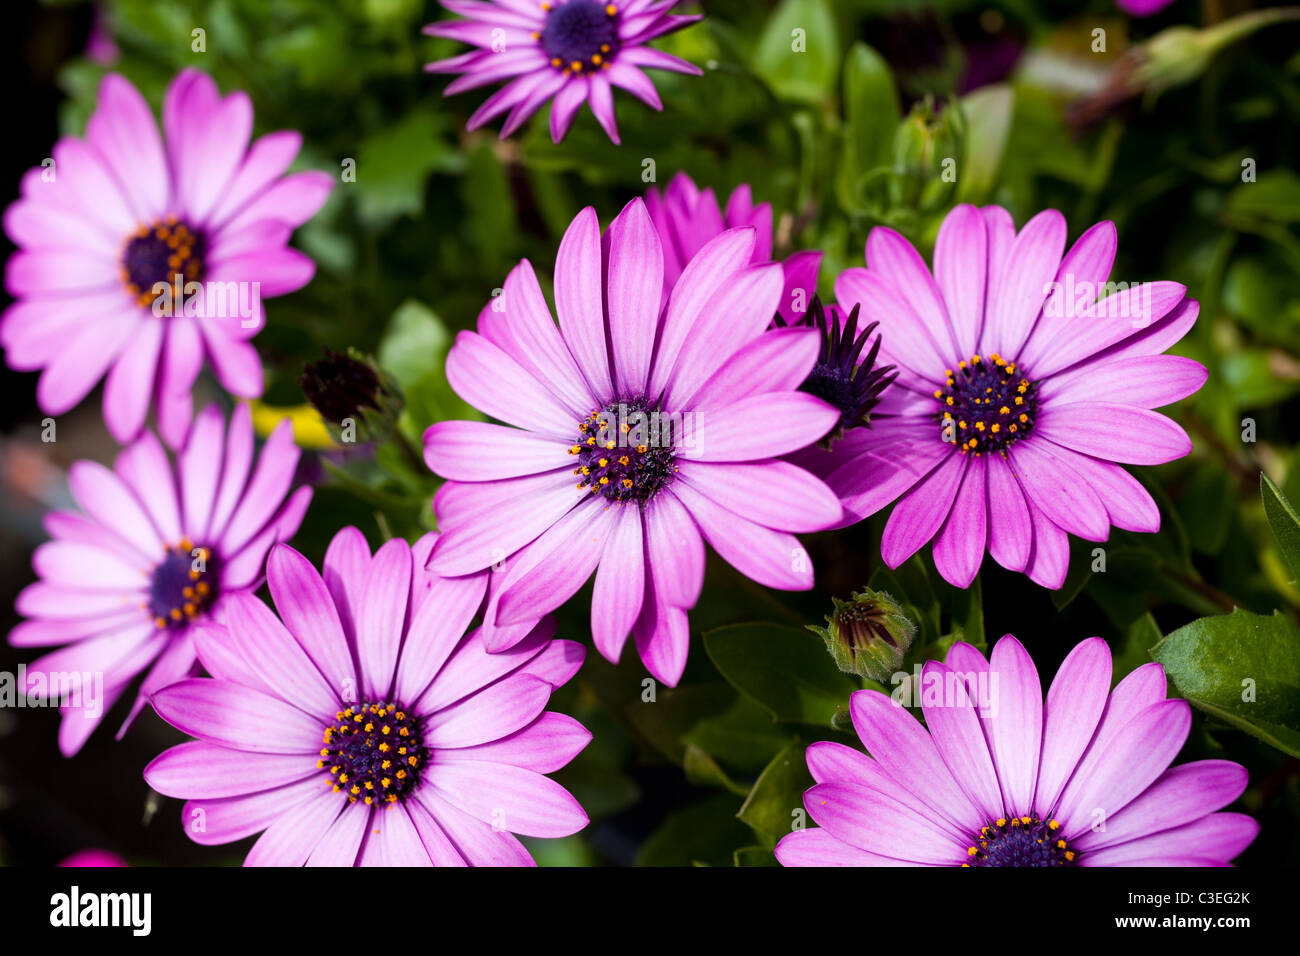 Purple Daisy close up shot Photo Stock